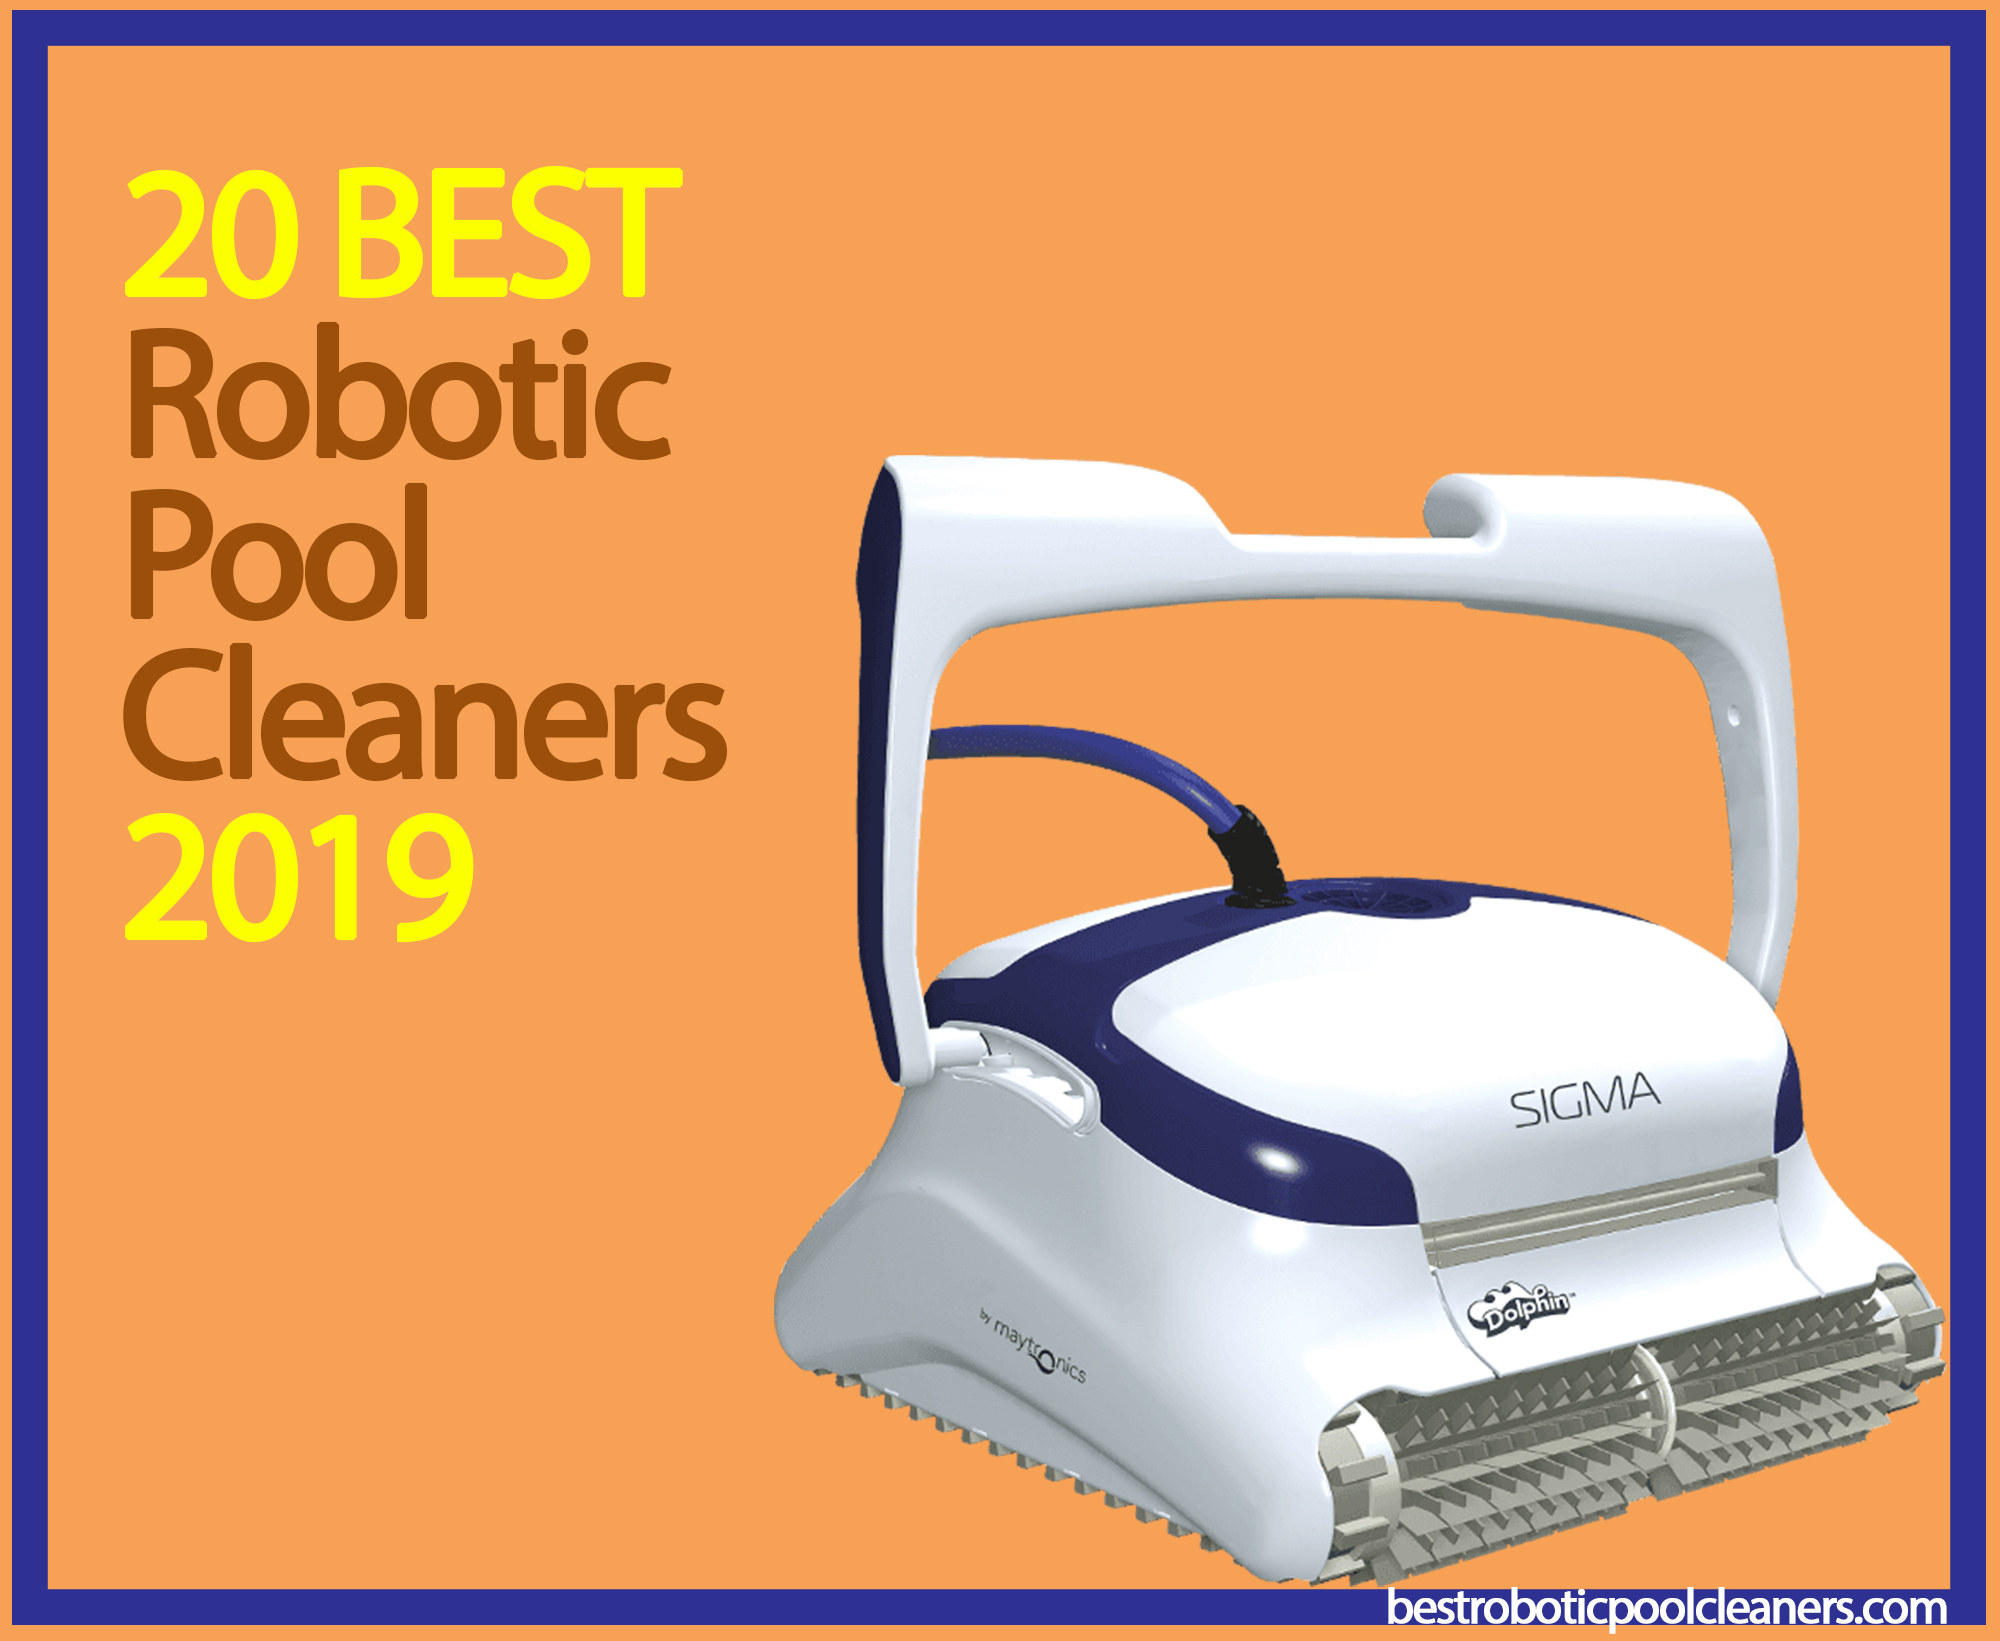 20 Best Robotic Pool Cleaners for 2019